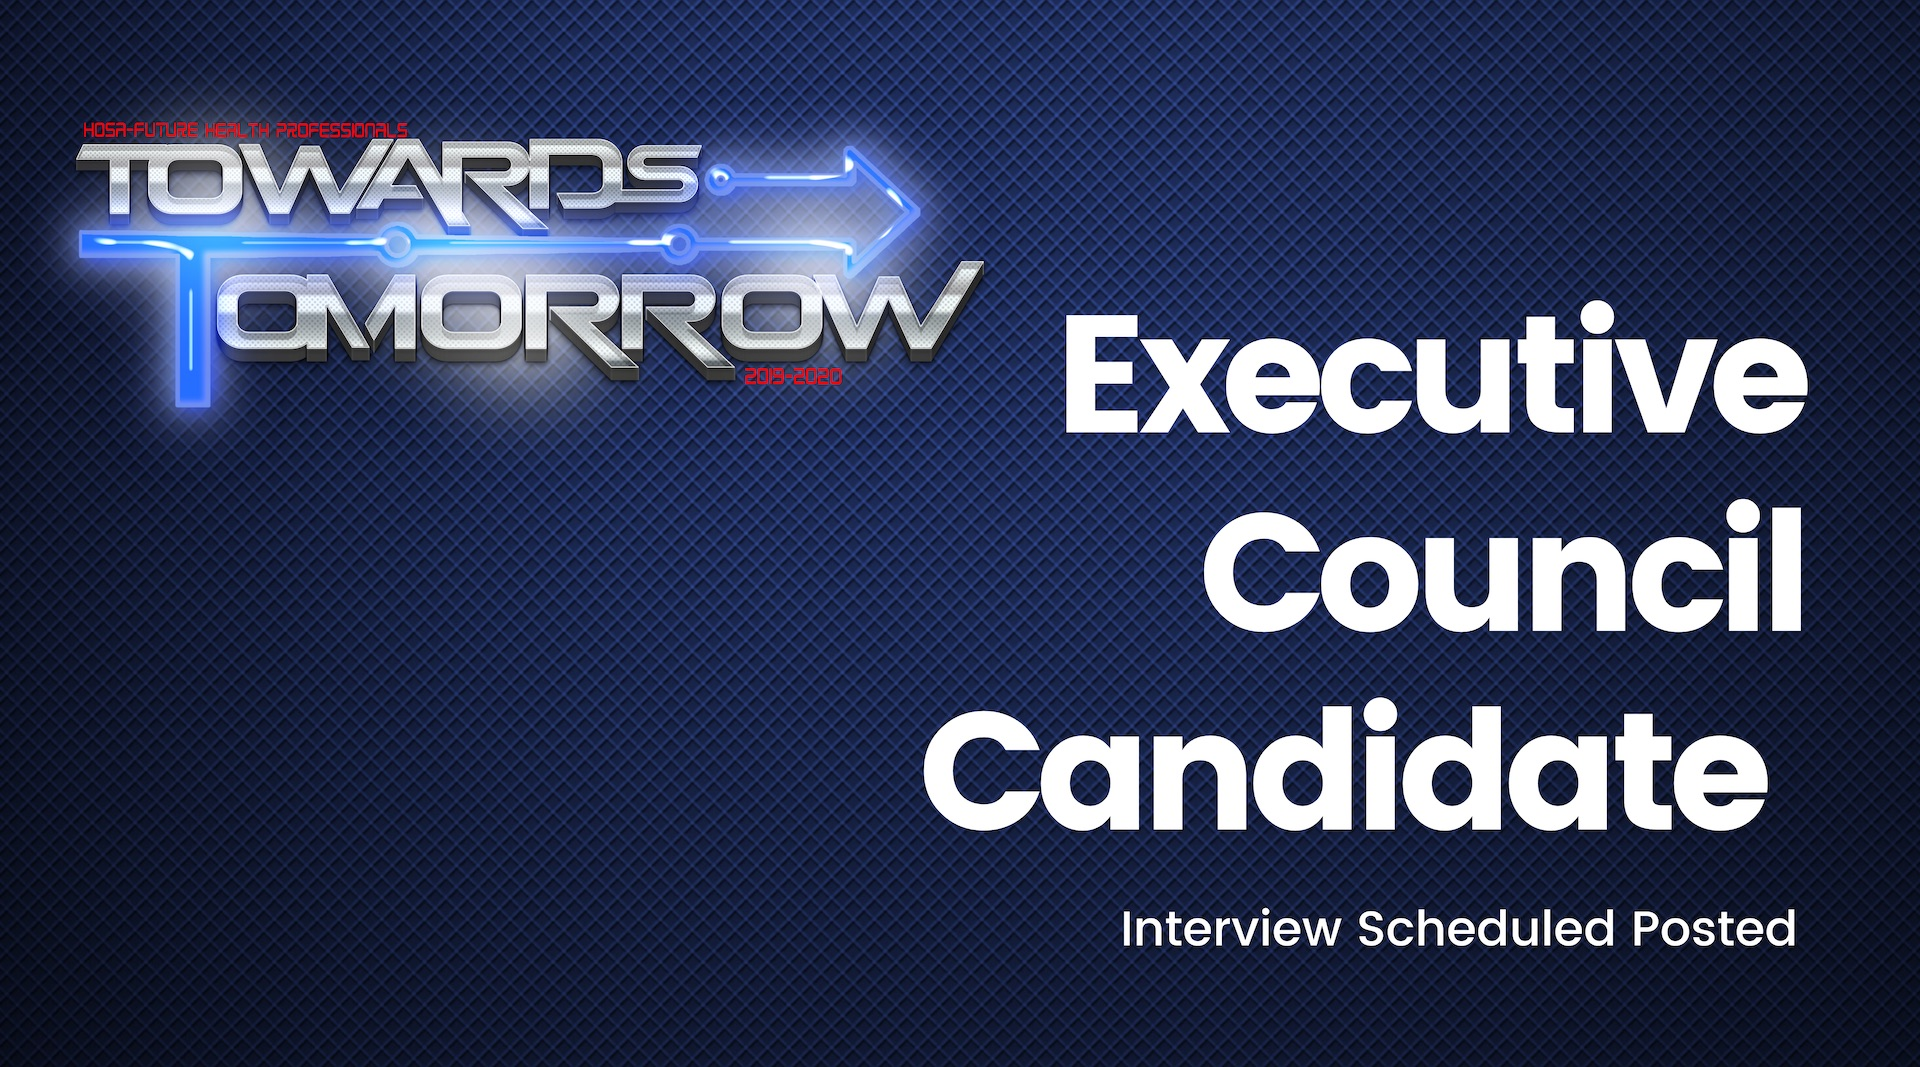 Executive Council Candidate Interview Schedule